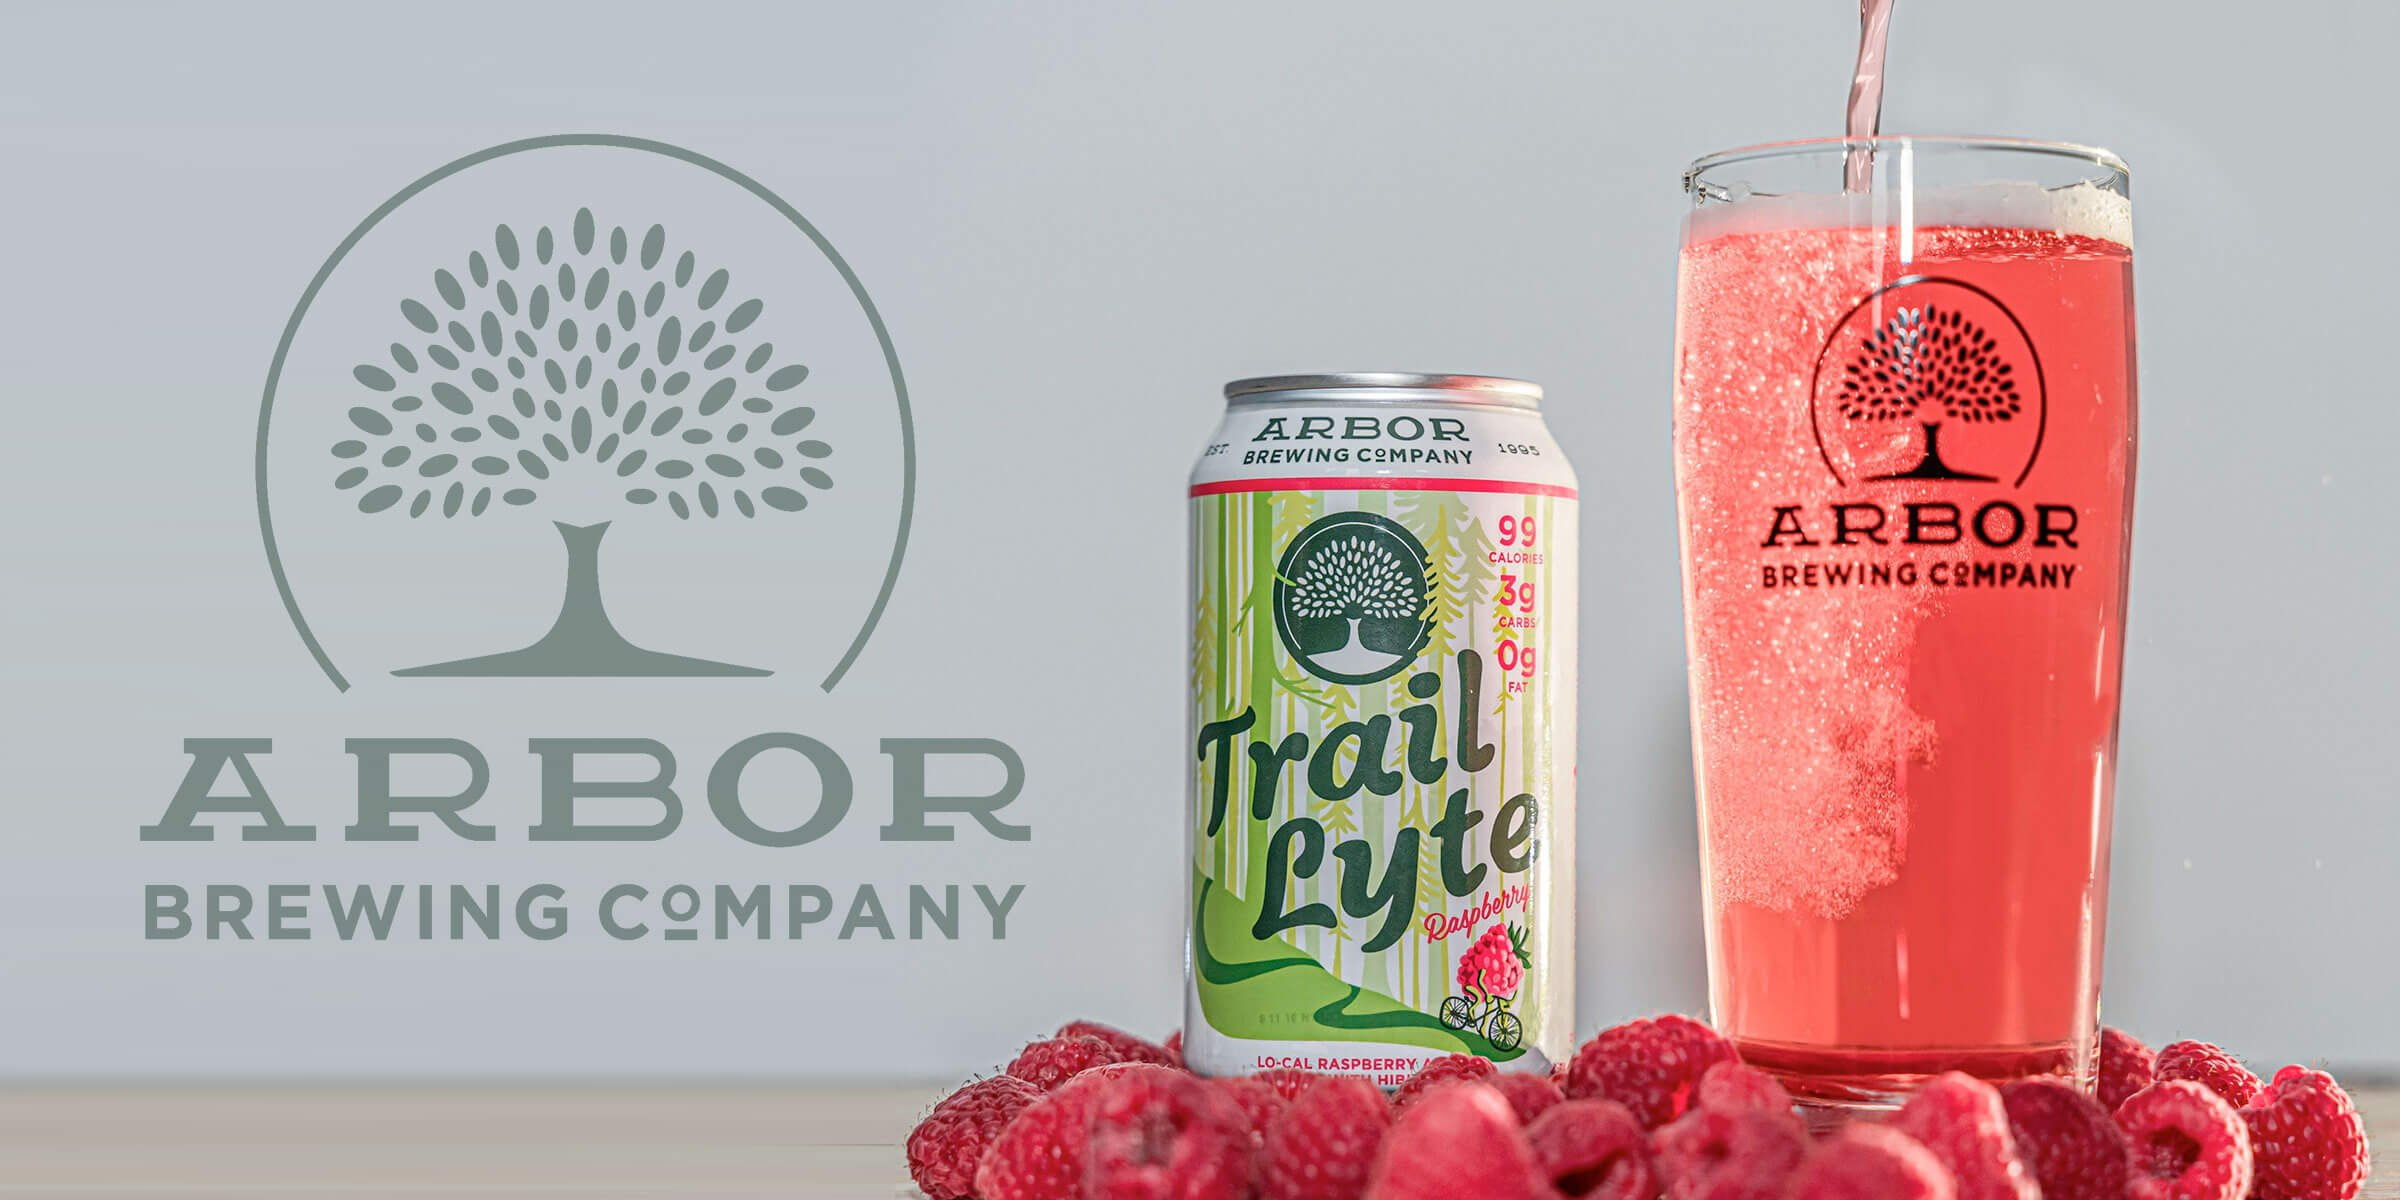 Arbor Brewing Company announced the release of its new Trail Lyte Raspberry Ale, a low calorie, craft beer targeted towards people with active lifestyles.